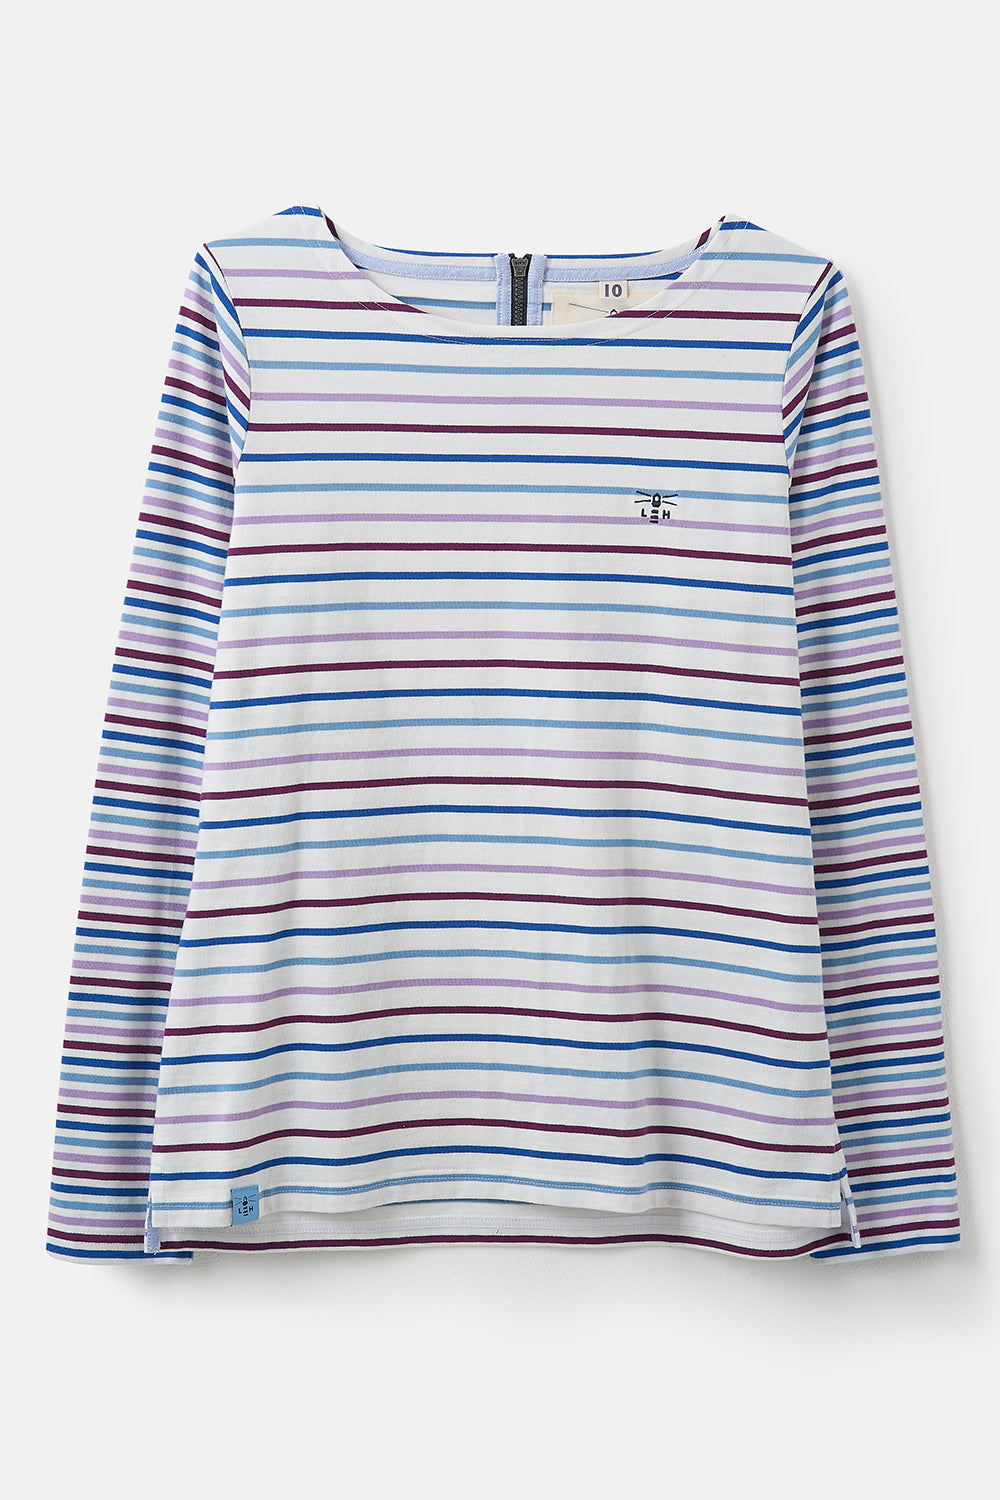 Lighthouse Causeway  - Womens Long Sleeve Top - Purple Blue Stripe